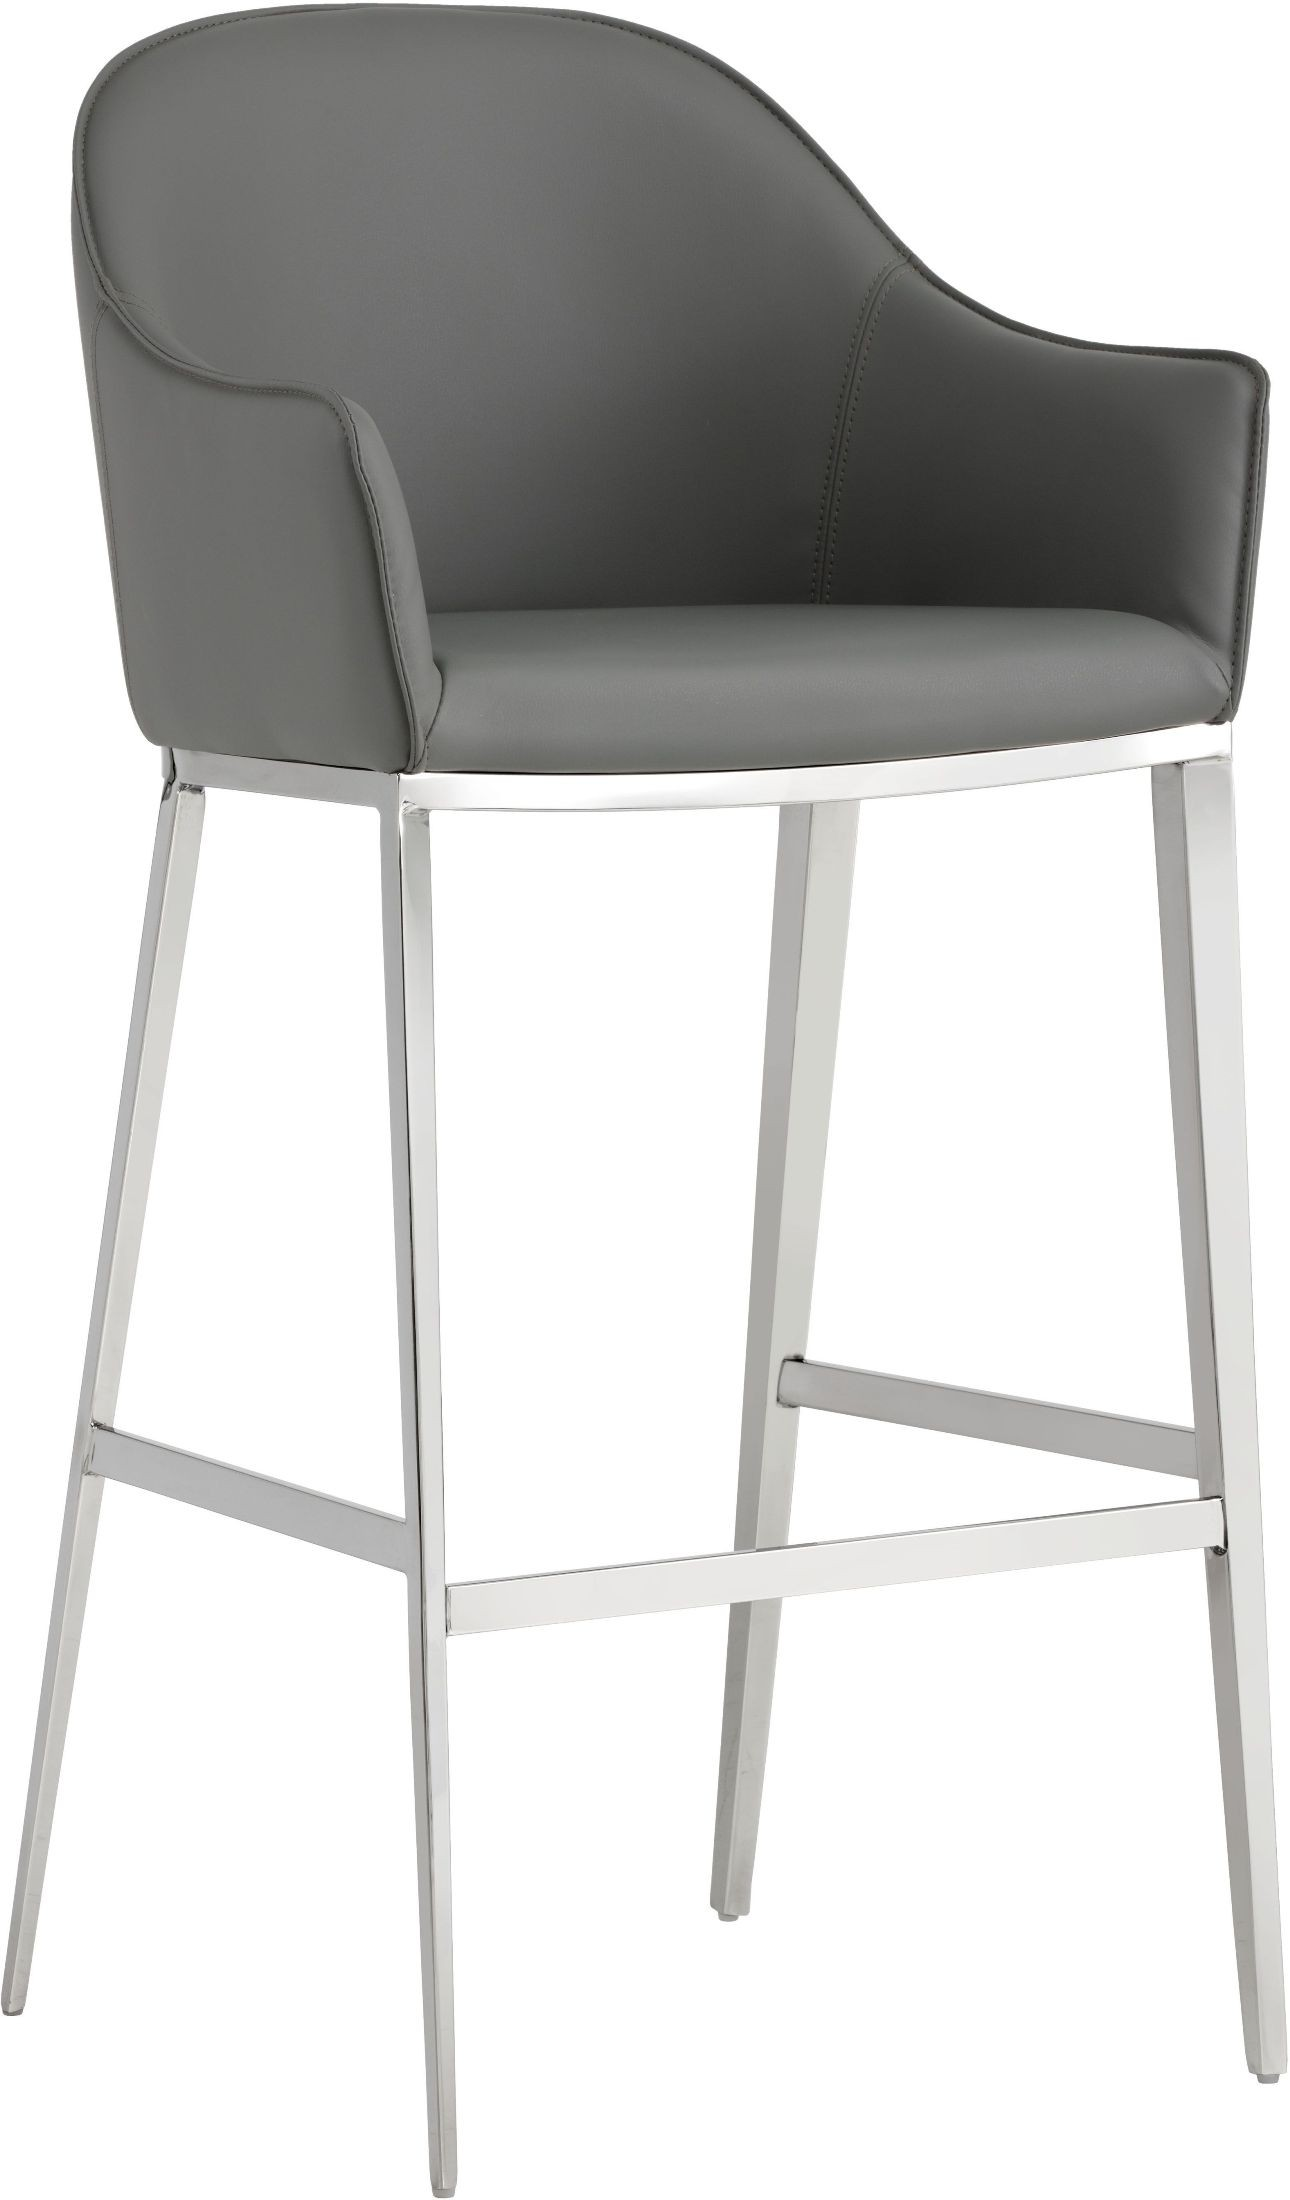 Ikon Stanis Gray Barstool Set Of 2 From Sunpan Coleman